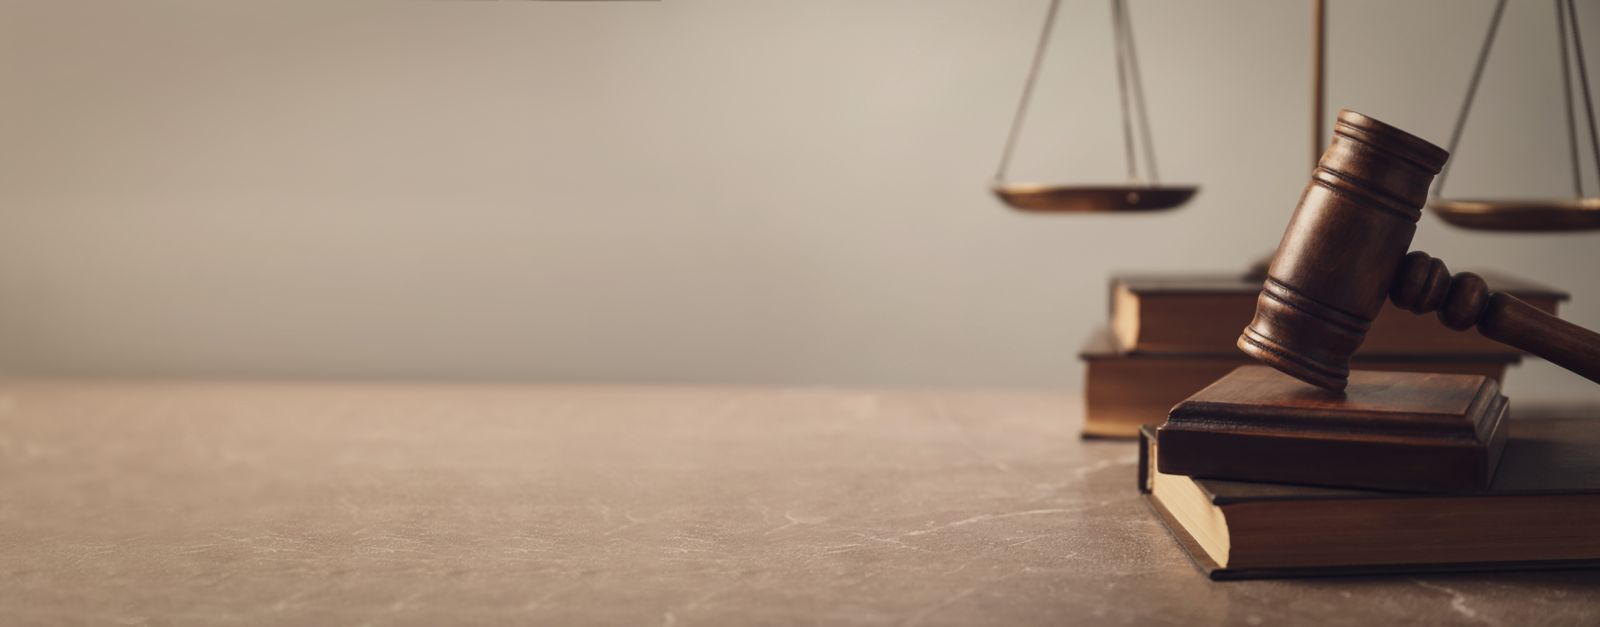 Wooden gavel with scales of justice and books on lawyer's table, space for text. Banner design